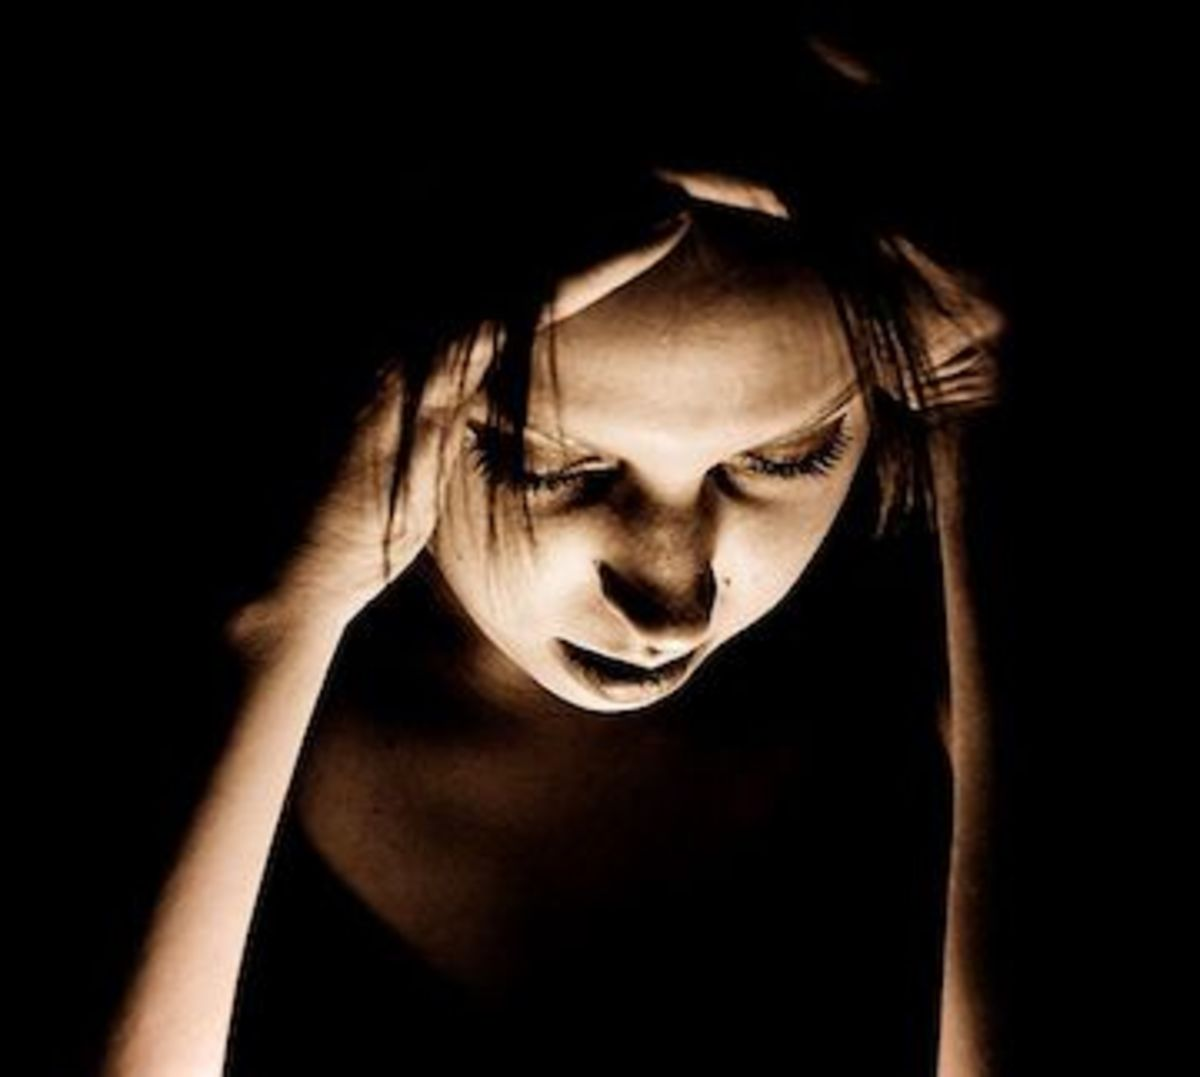 What Is a Migraine and How Can I Get Rid of It Naturally?